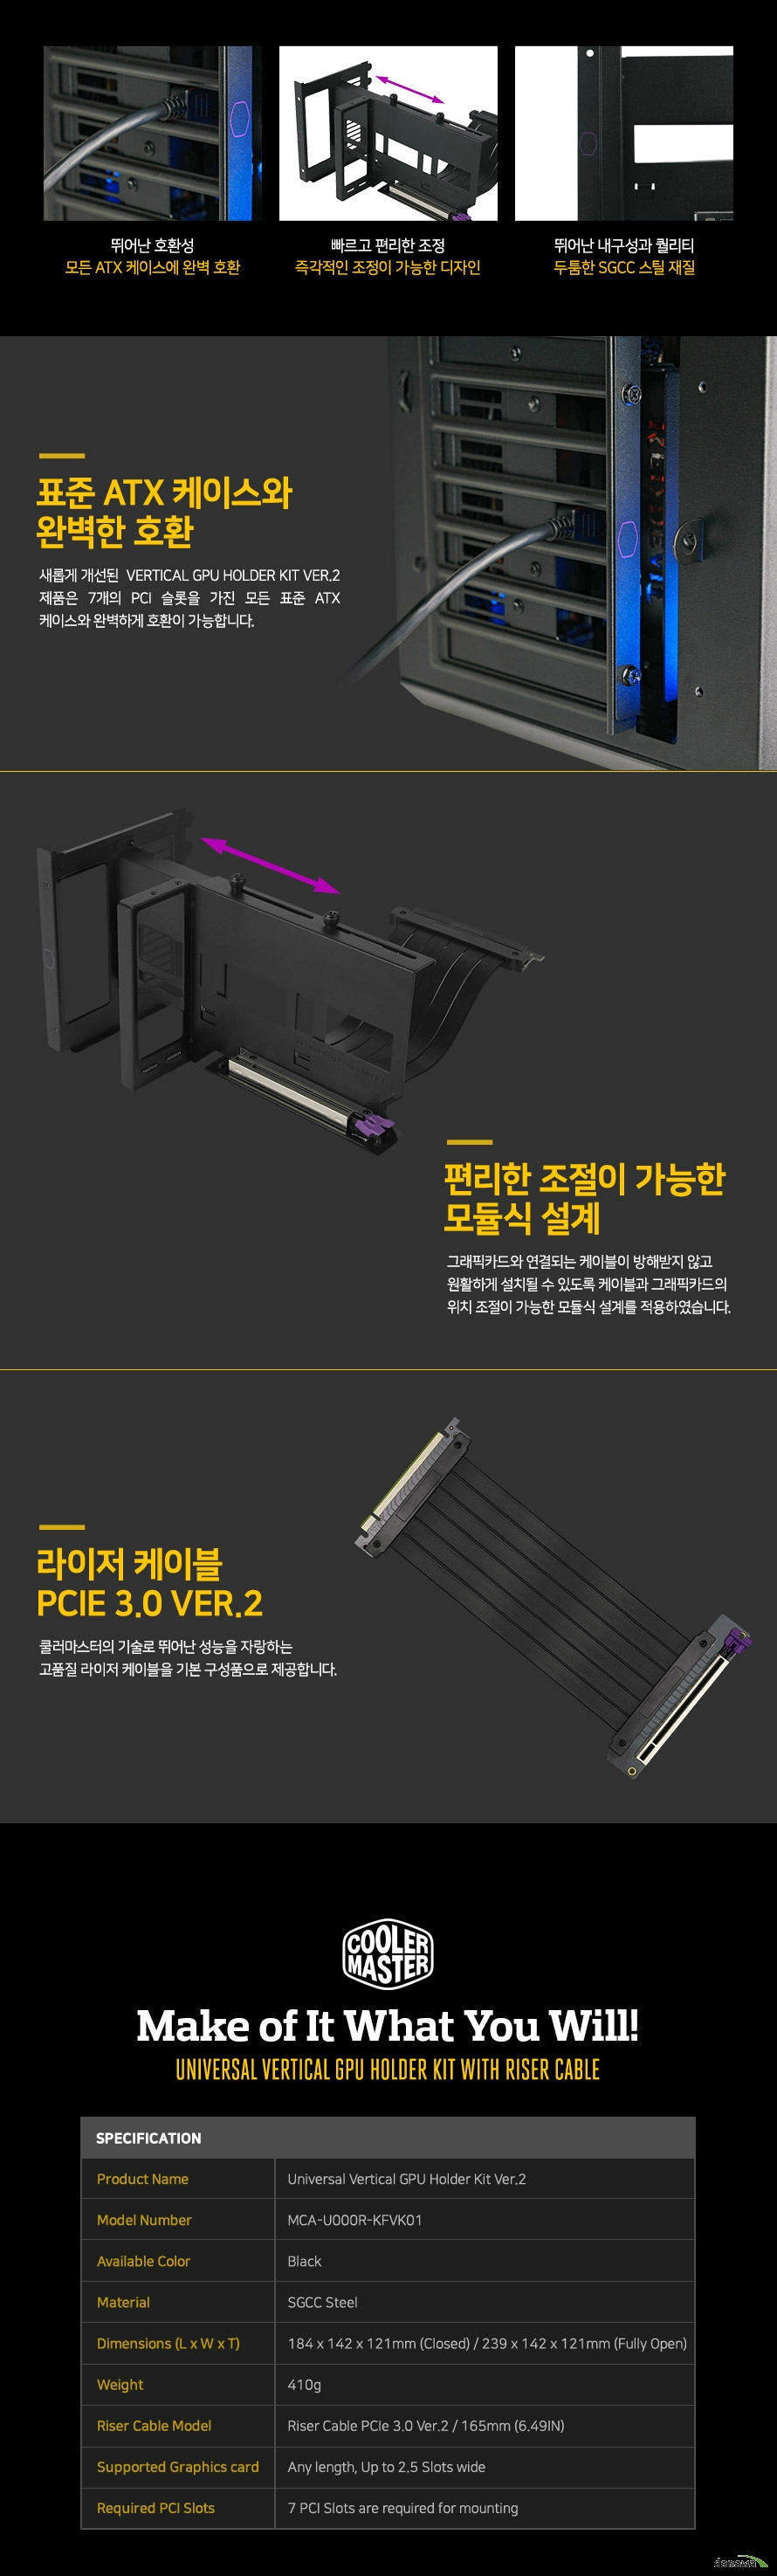 쿨러마스터 Universal Vertical GPU Holder Kit Ver.2